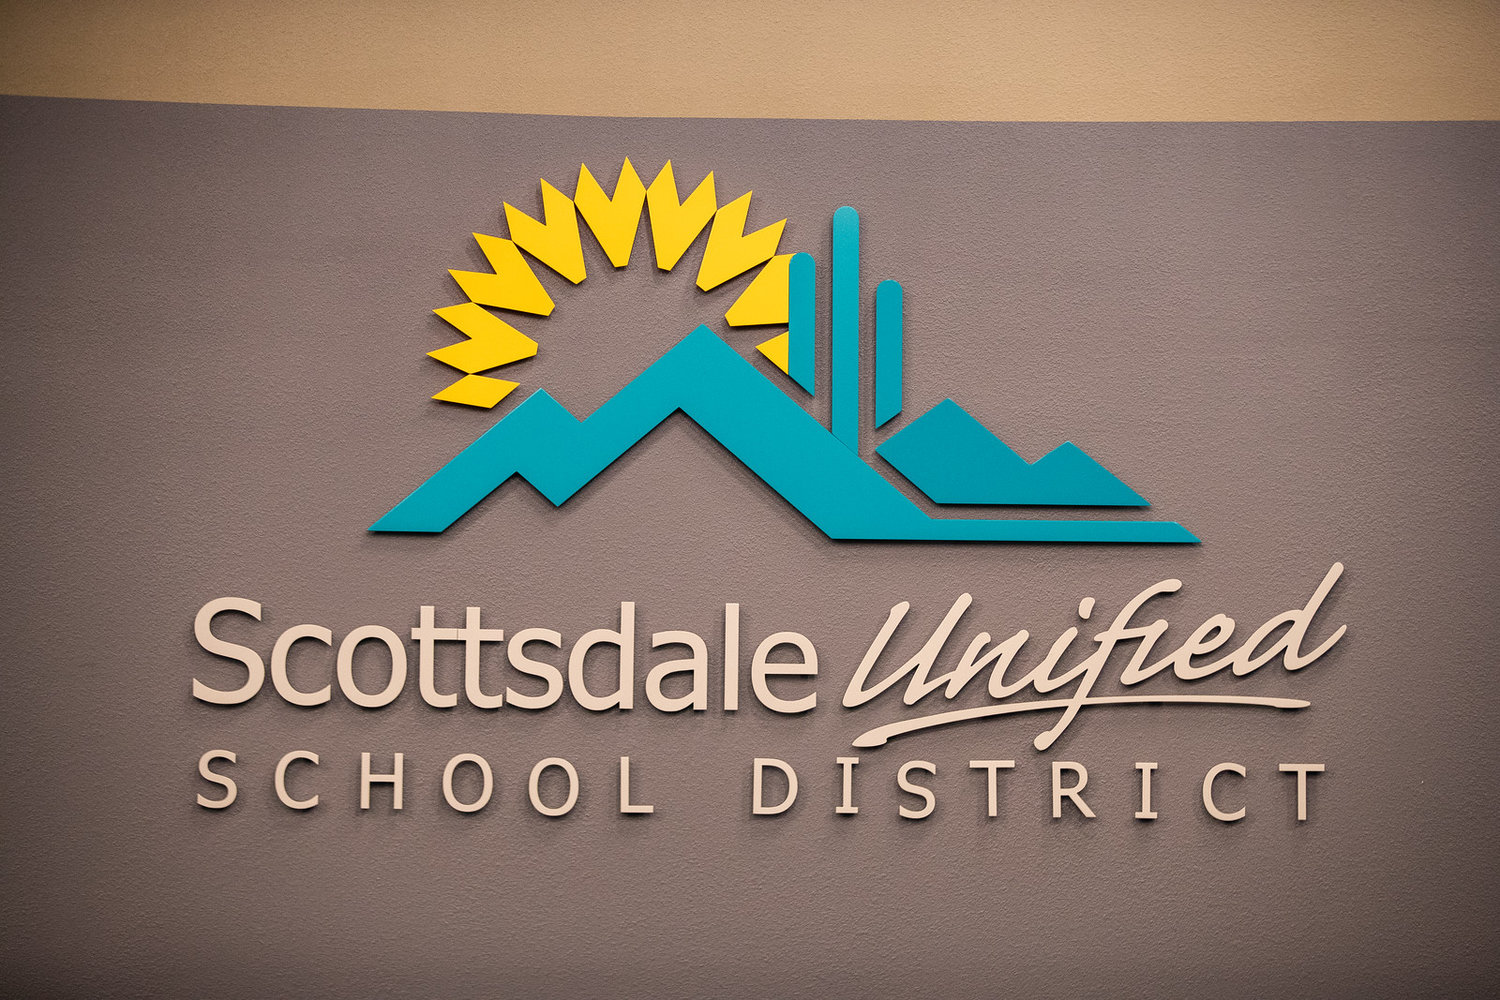 Campaign finance reports show which candidates for the Scottsdale Unified School District Governing Board are receiving monetary donations.